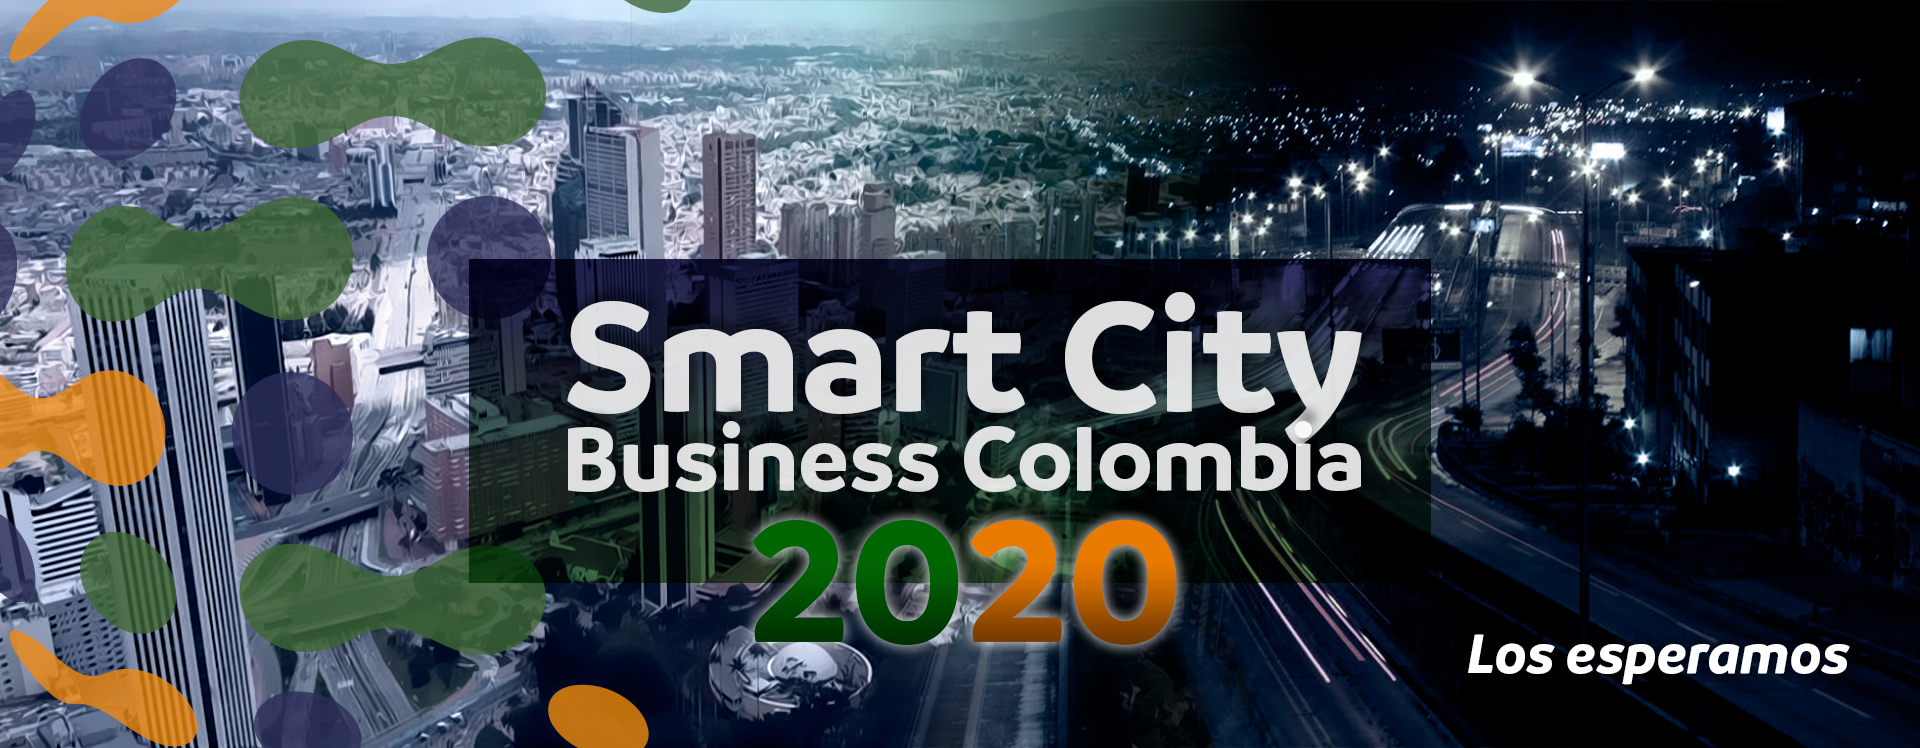 Smart City Business Colombia 2020